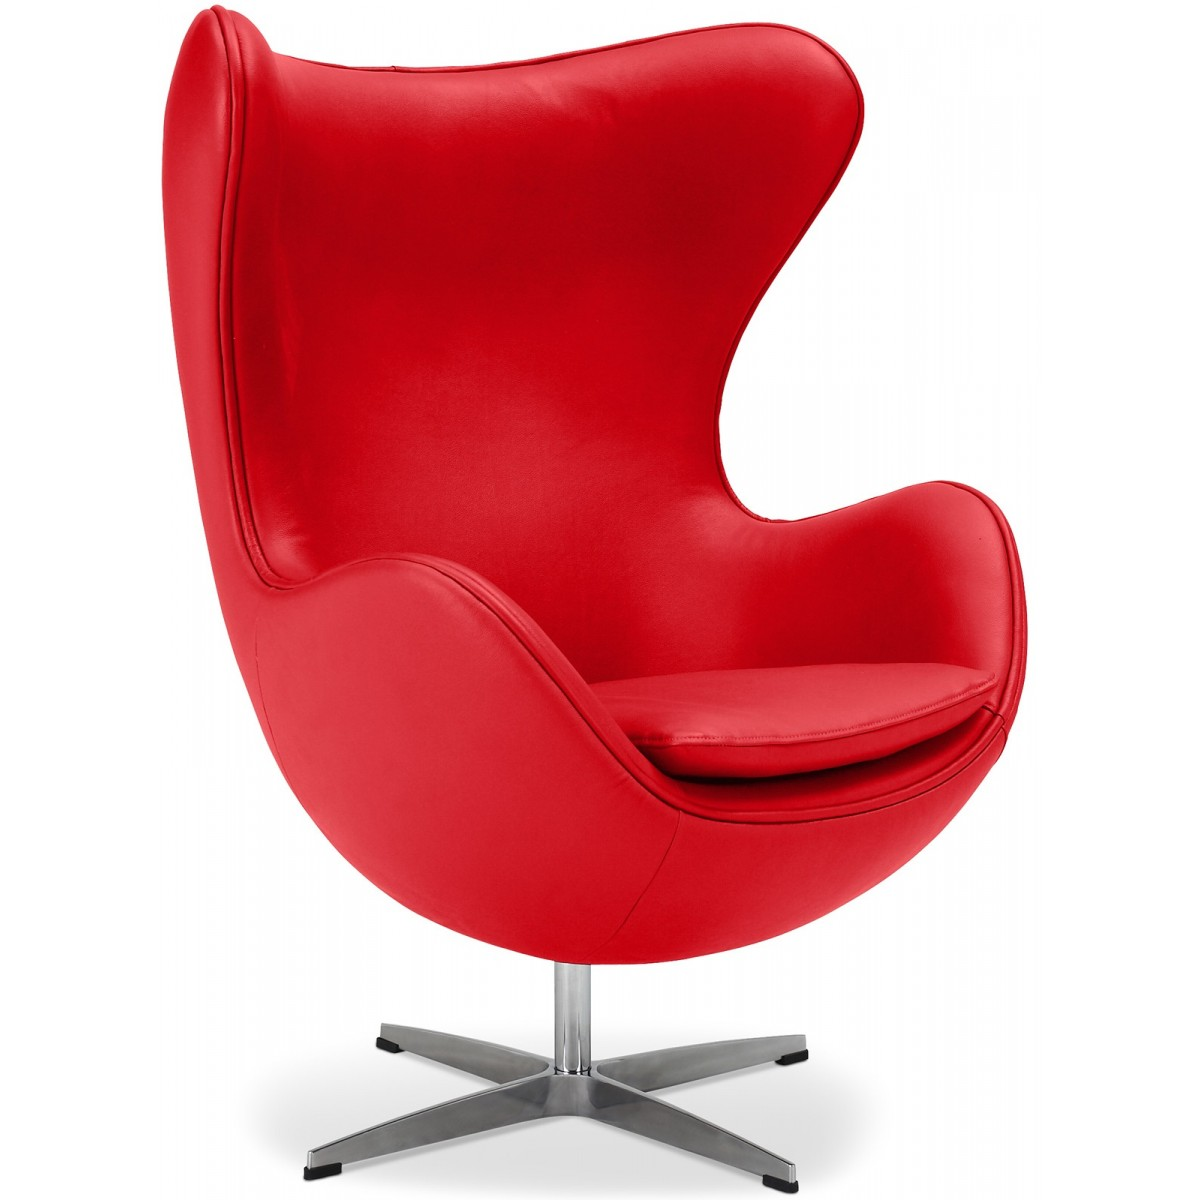 Fauteuils Pop Fauteuil Egg Chair Arne Jacobsen En Cuir Pop Design Fr